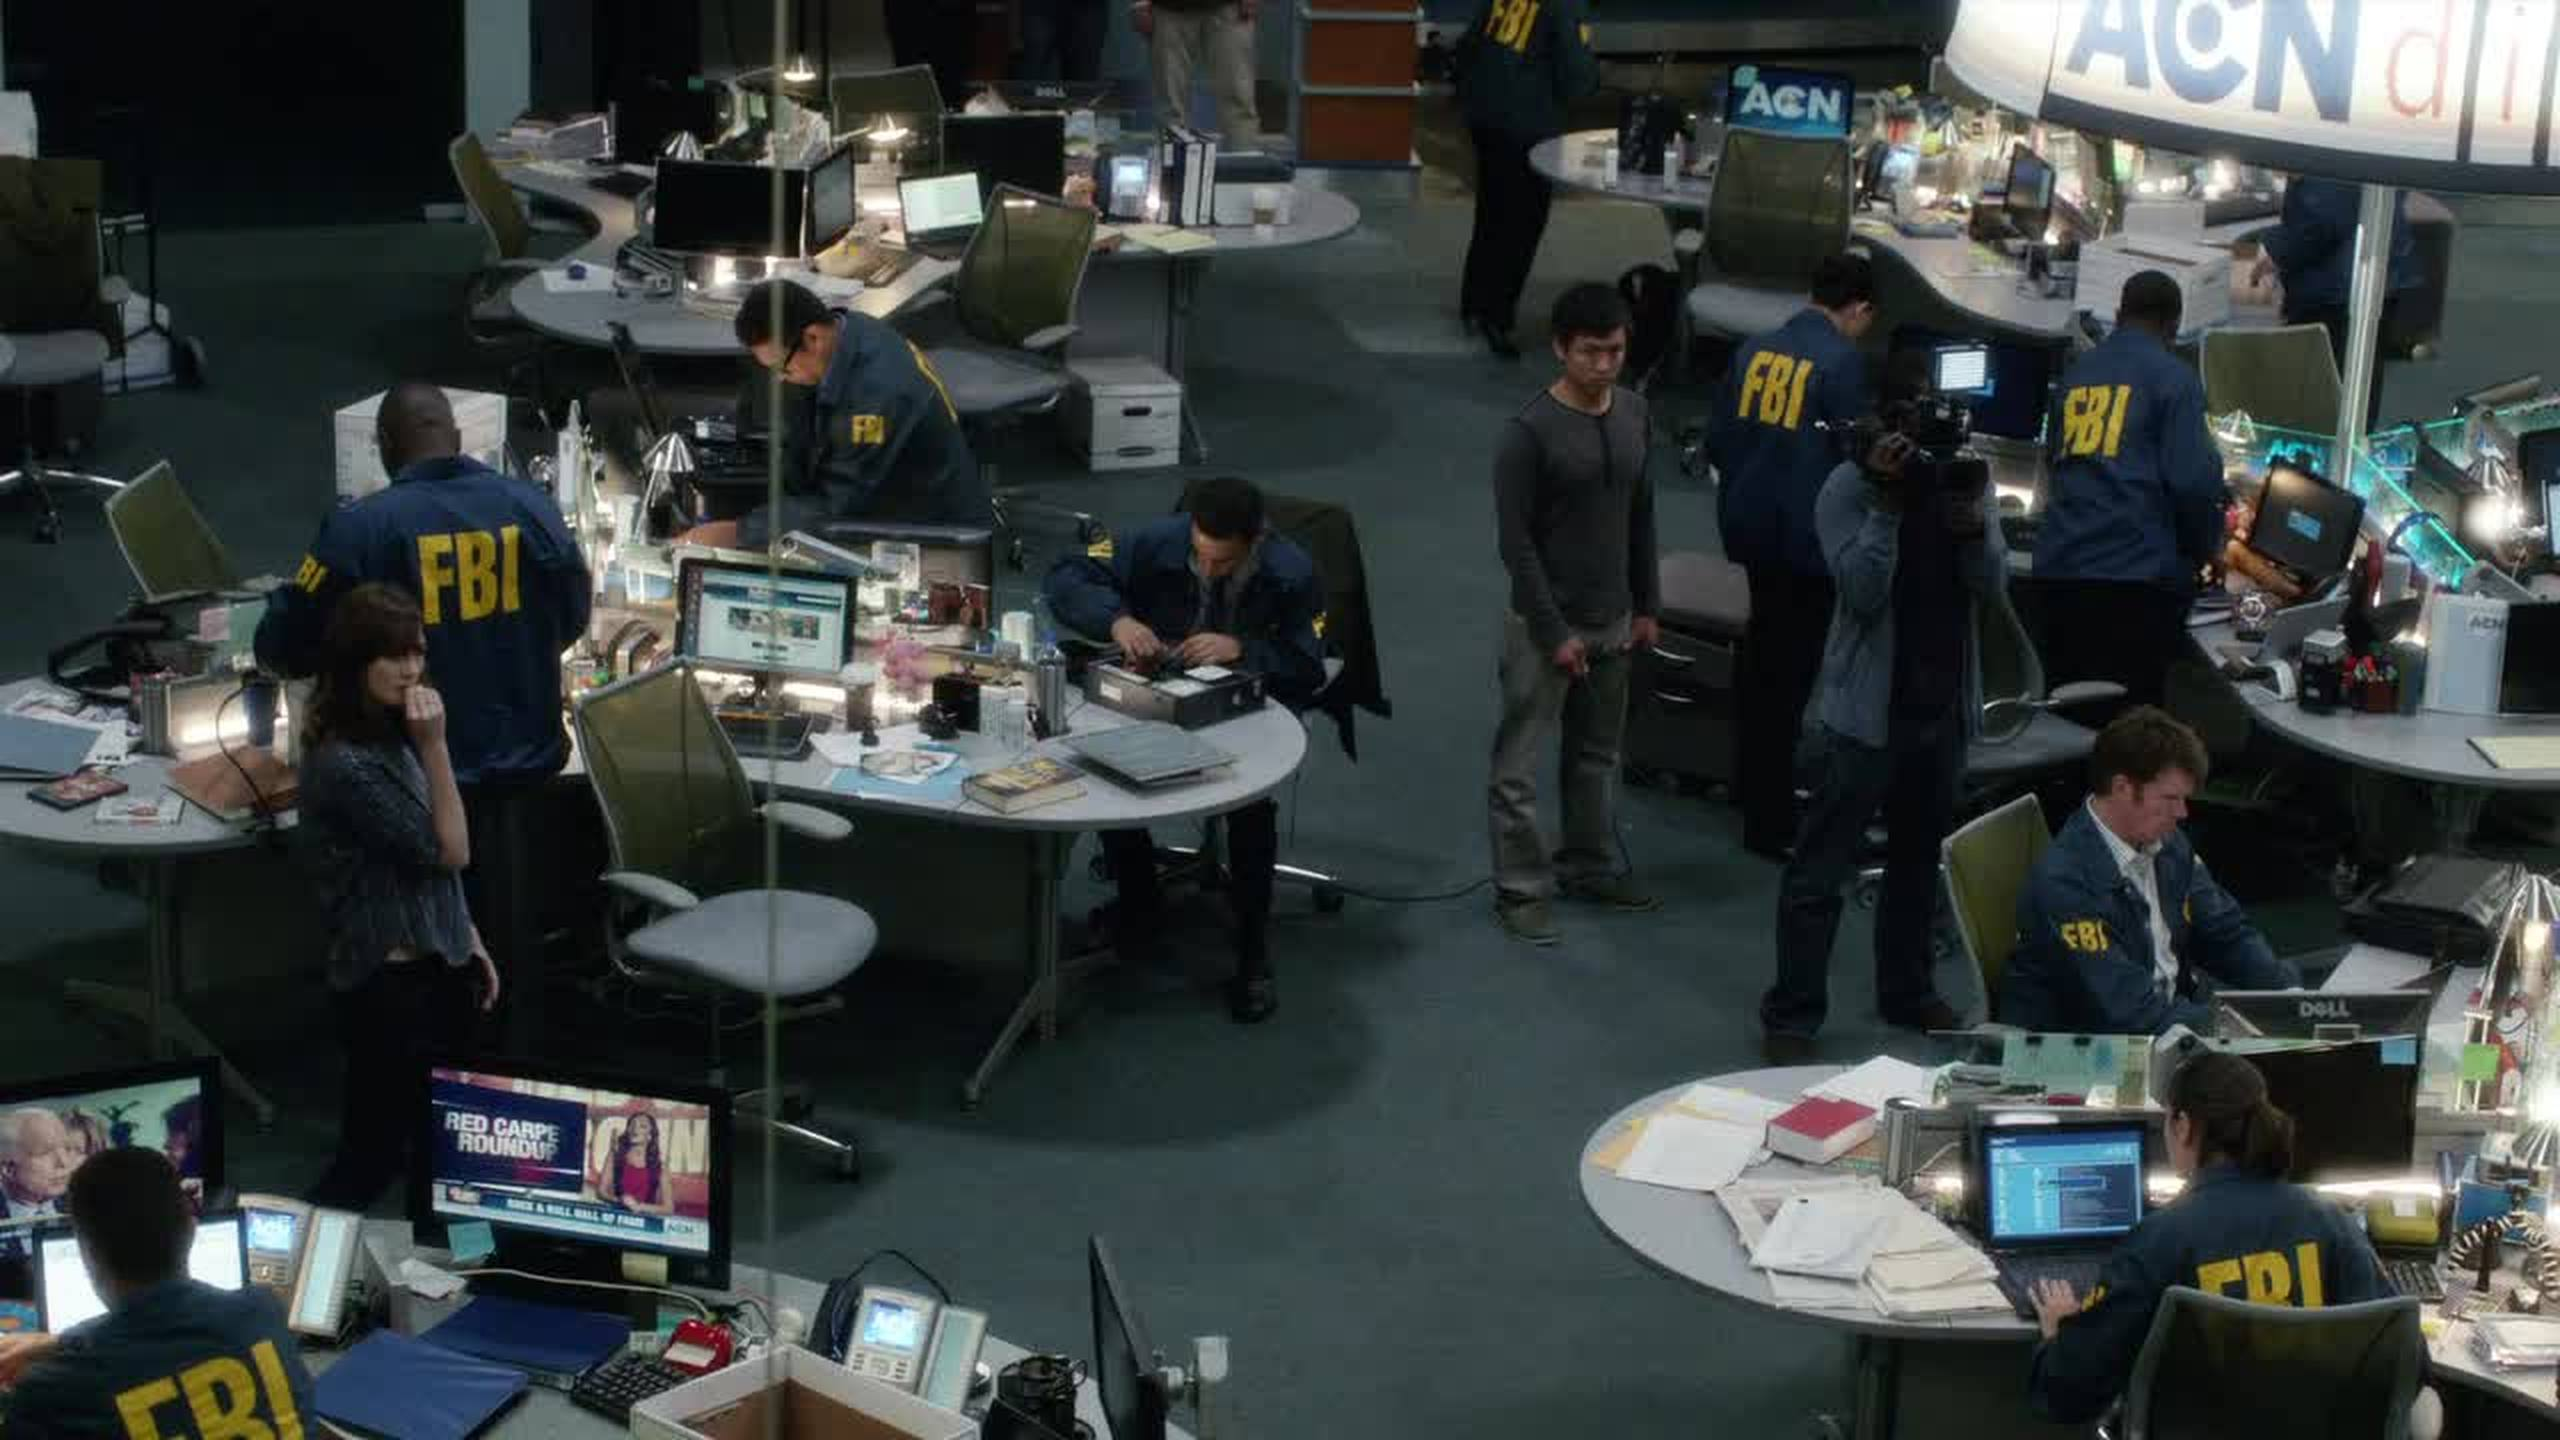 newsroom season 1 complete torrent download